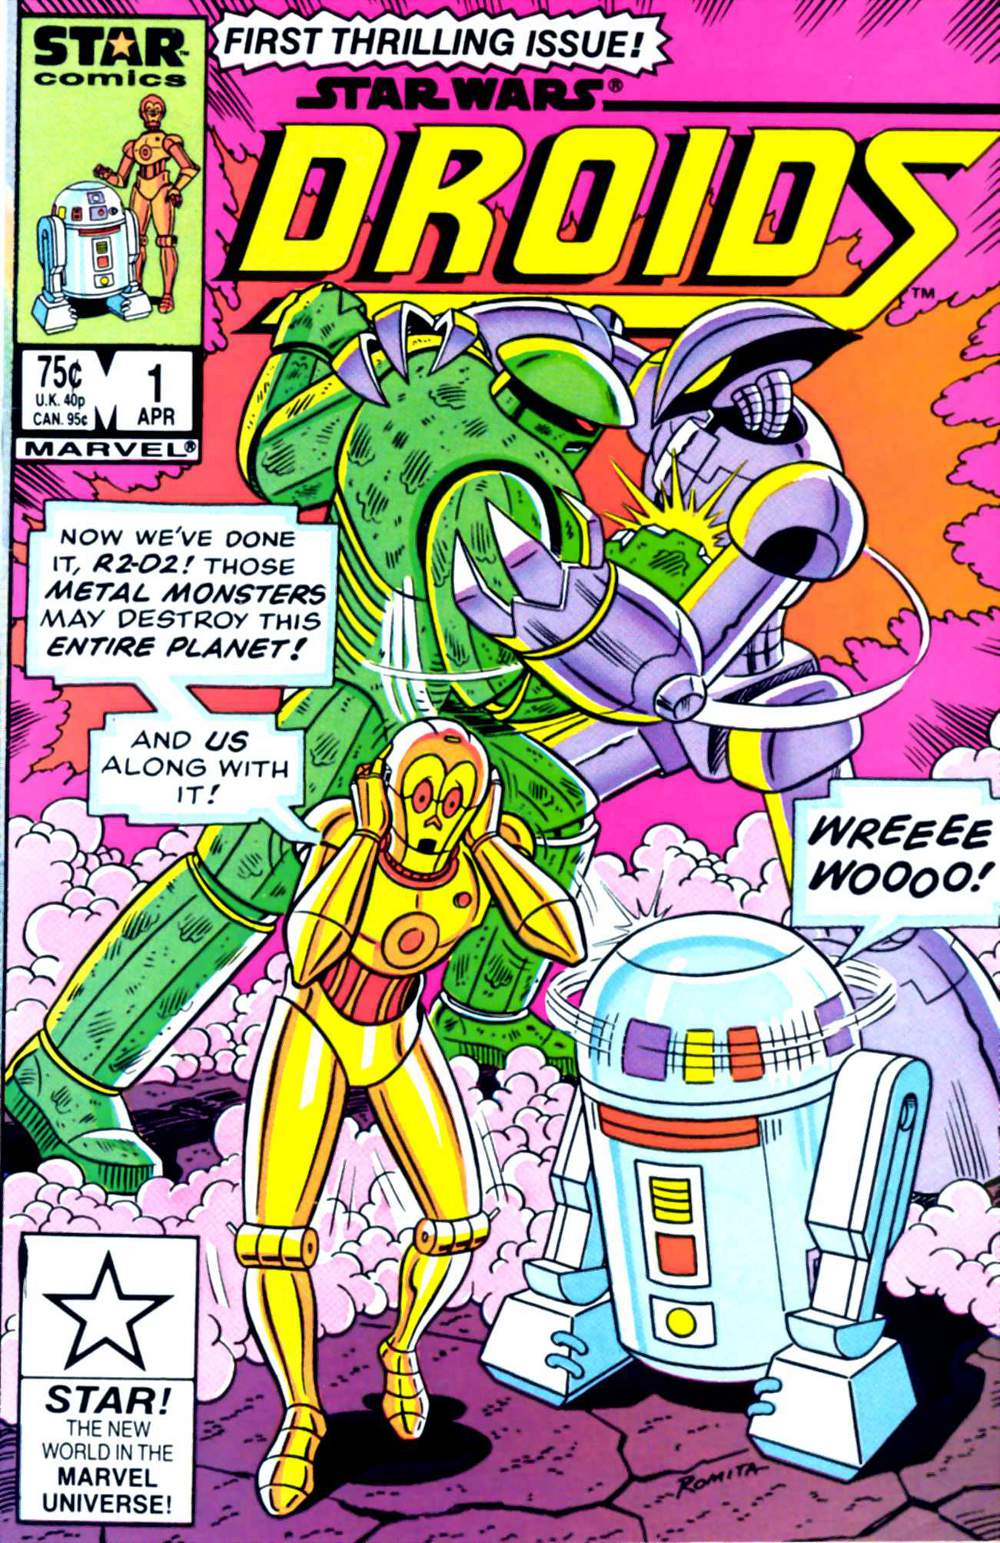 Droids #1 - The Destroyer